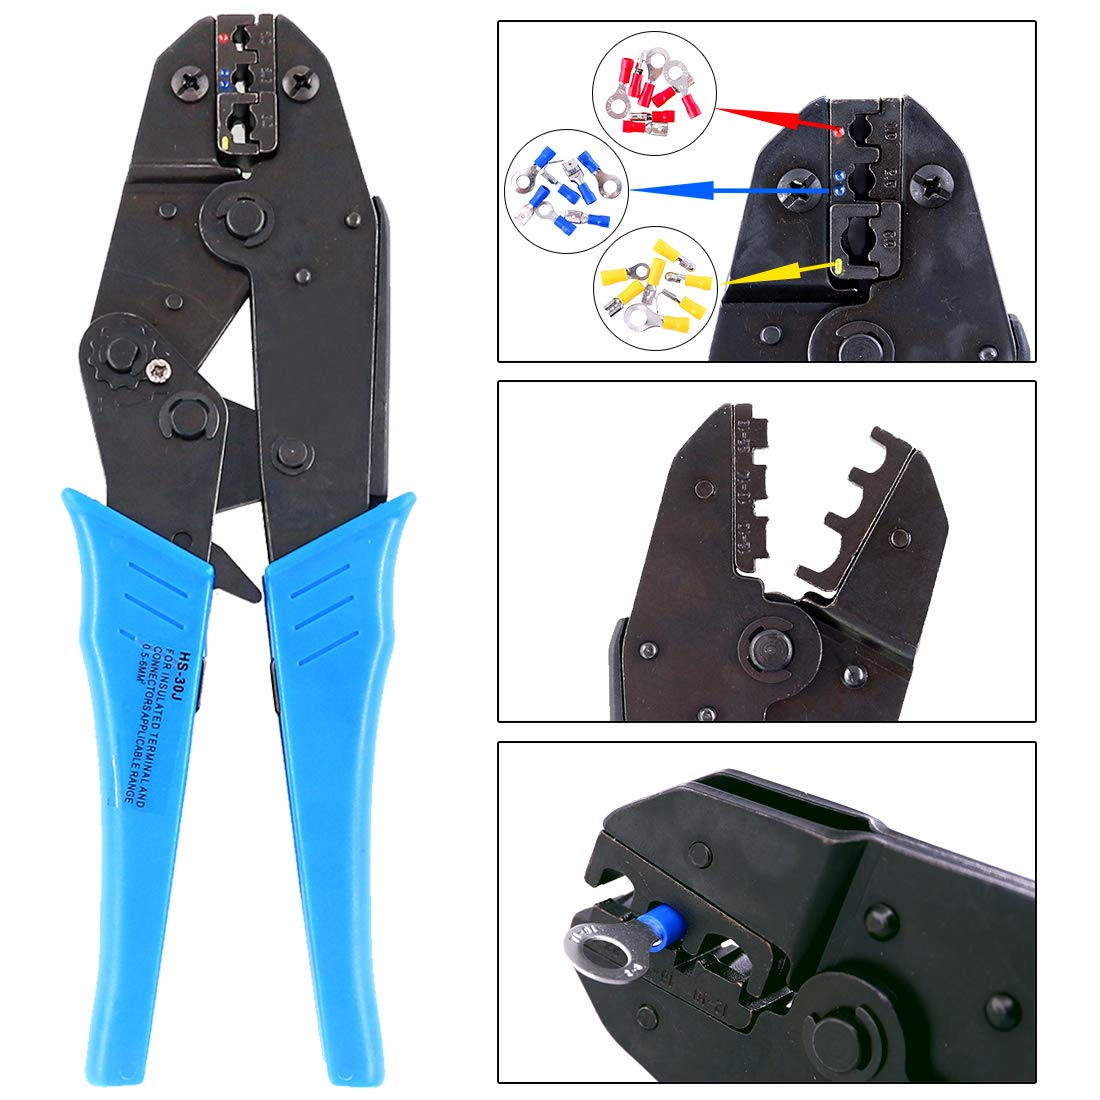 Hilitchi Professional Insulated Wire Terminals Connectors Ratcheting Crimper Tool for 22-10AWG by Hilitchi